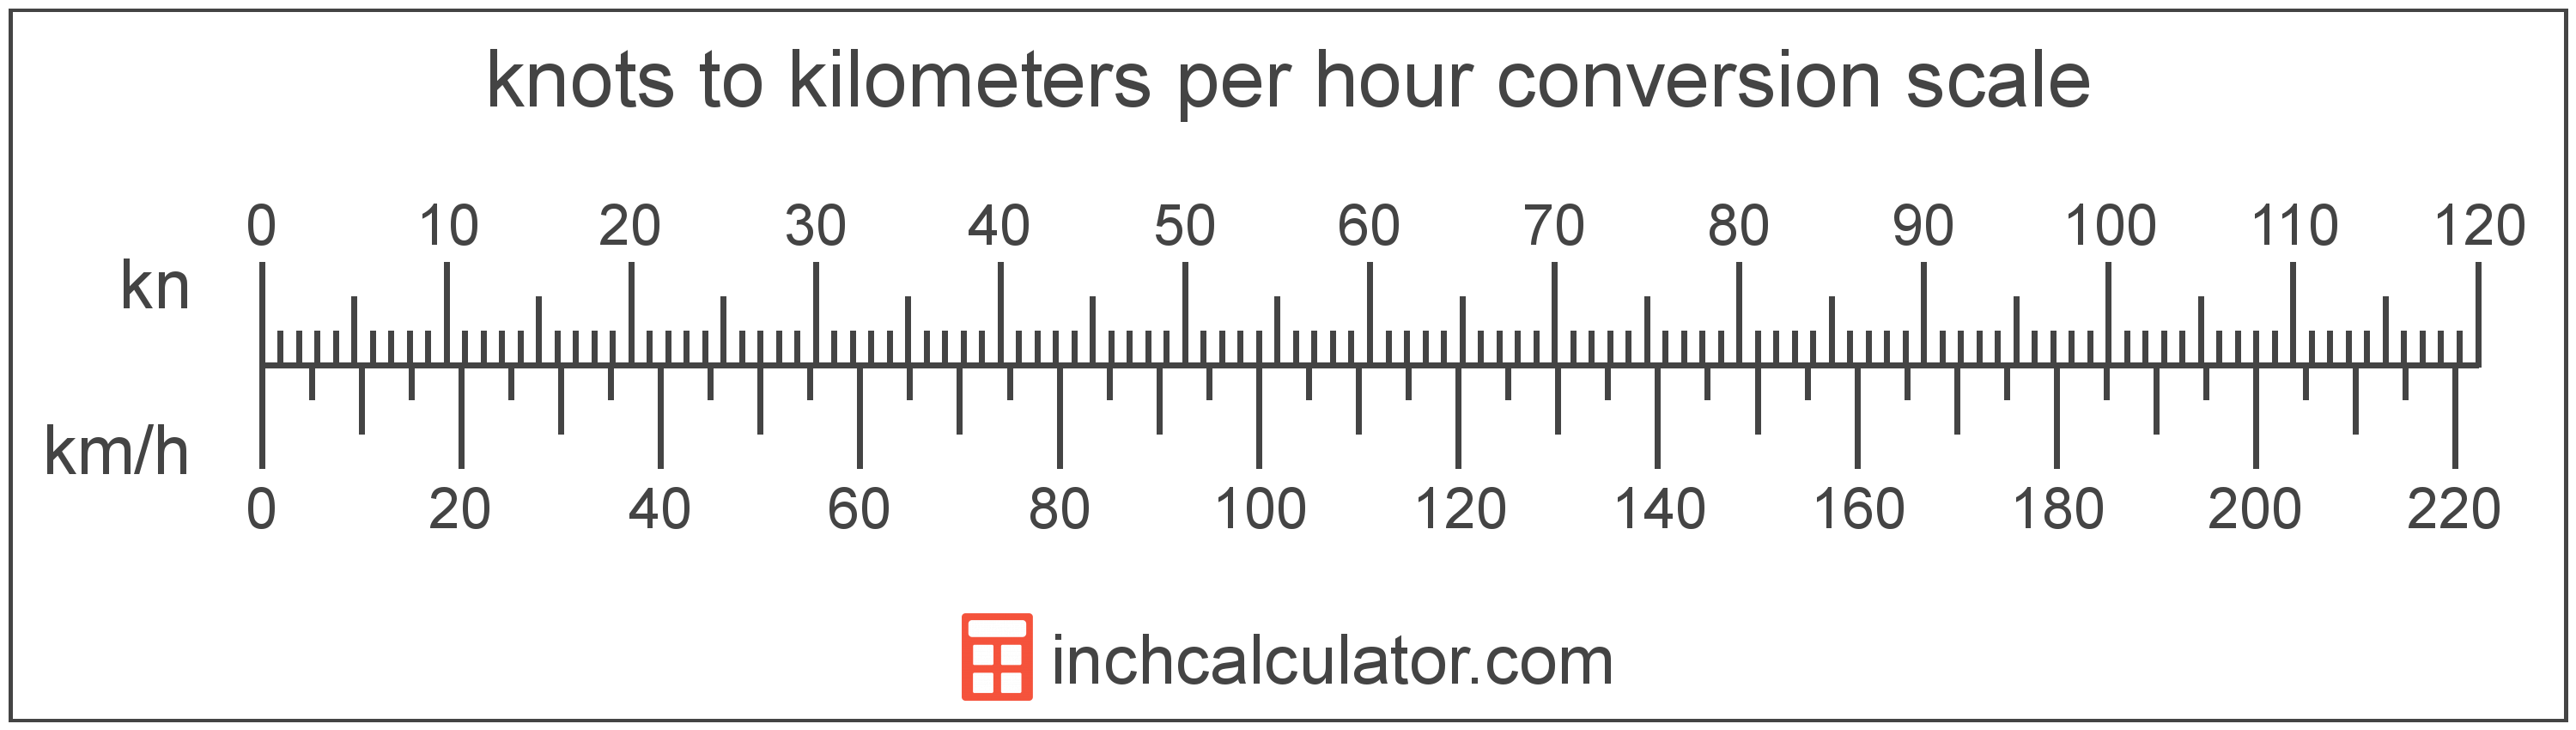 conversion scale showing kilometers per hour and equivalent knots speed values